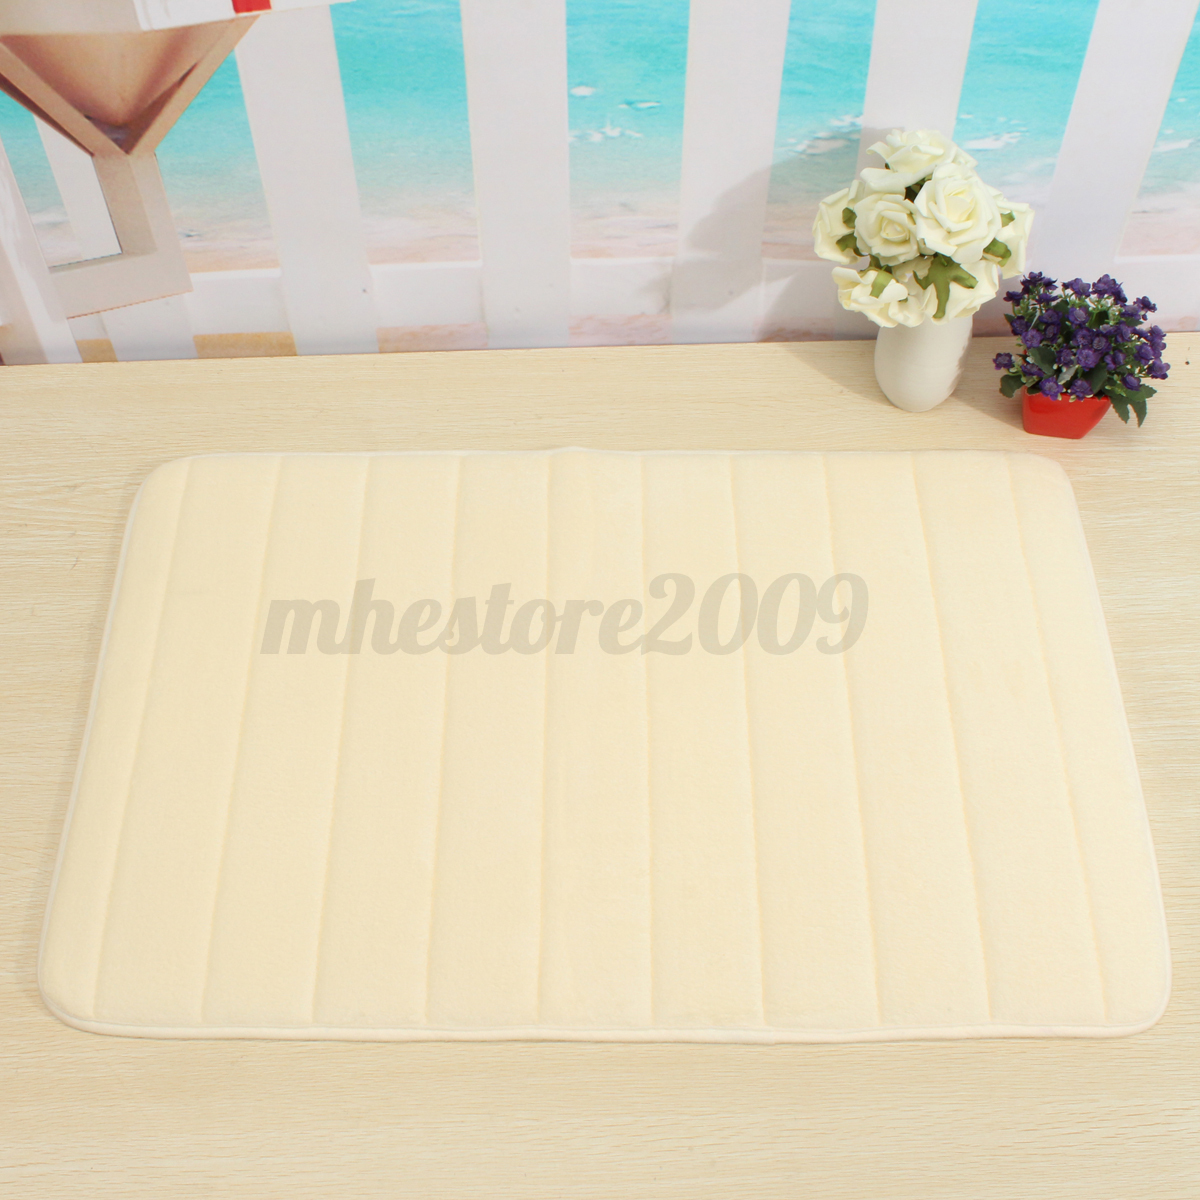 non slip bathroom floor memory foam non slip bathroom bath mat bedroom shower 19749 | C482D6979A8C47908D679A2303CFC6923663399999335663C9D236429A3699D2CB9A639DF7D2832343CDD2467354CE939923C853C7C753CD33A013CC